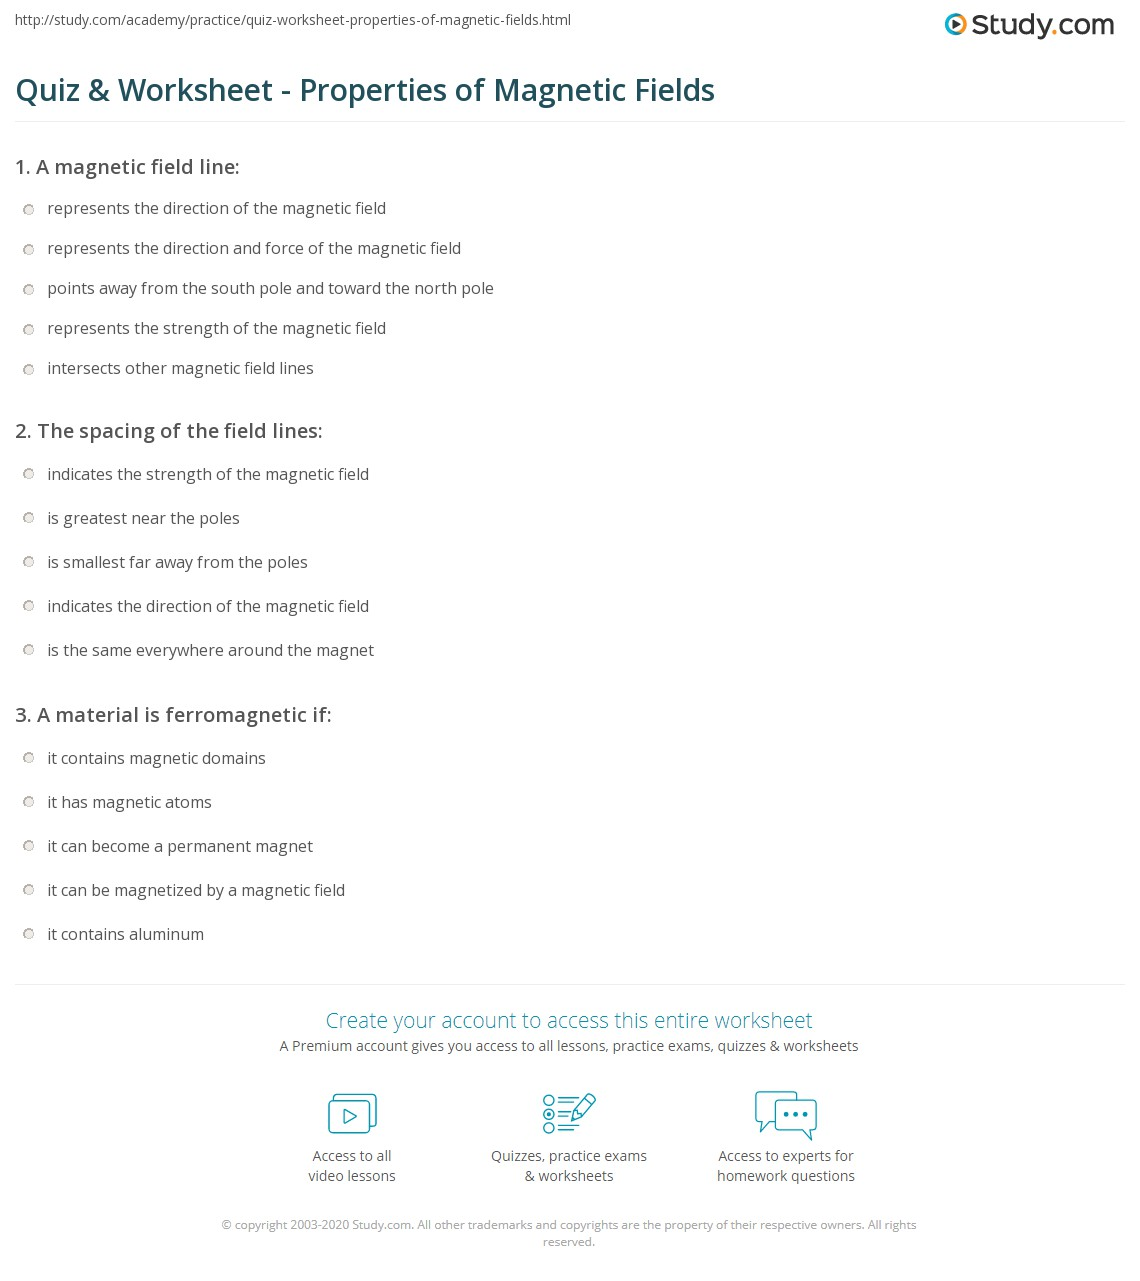 Quiz & Worksheet - Properties of Magnetic Fields | Study.com